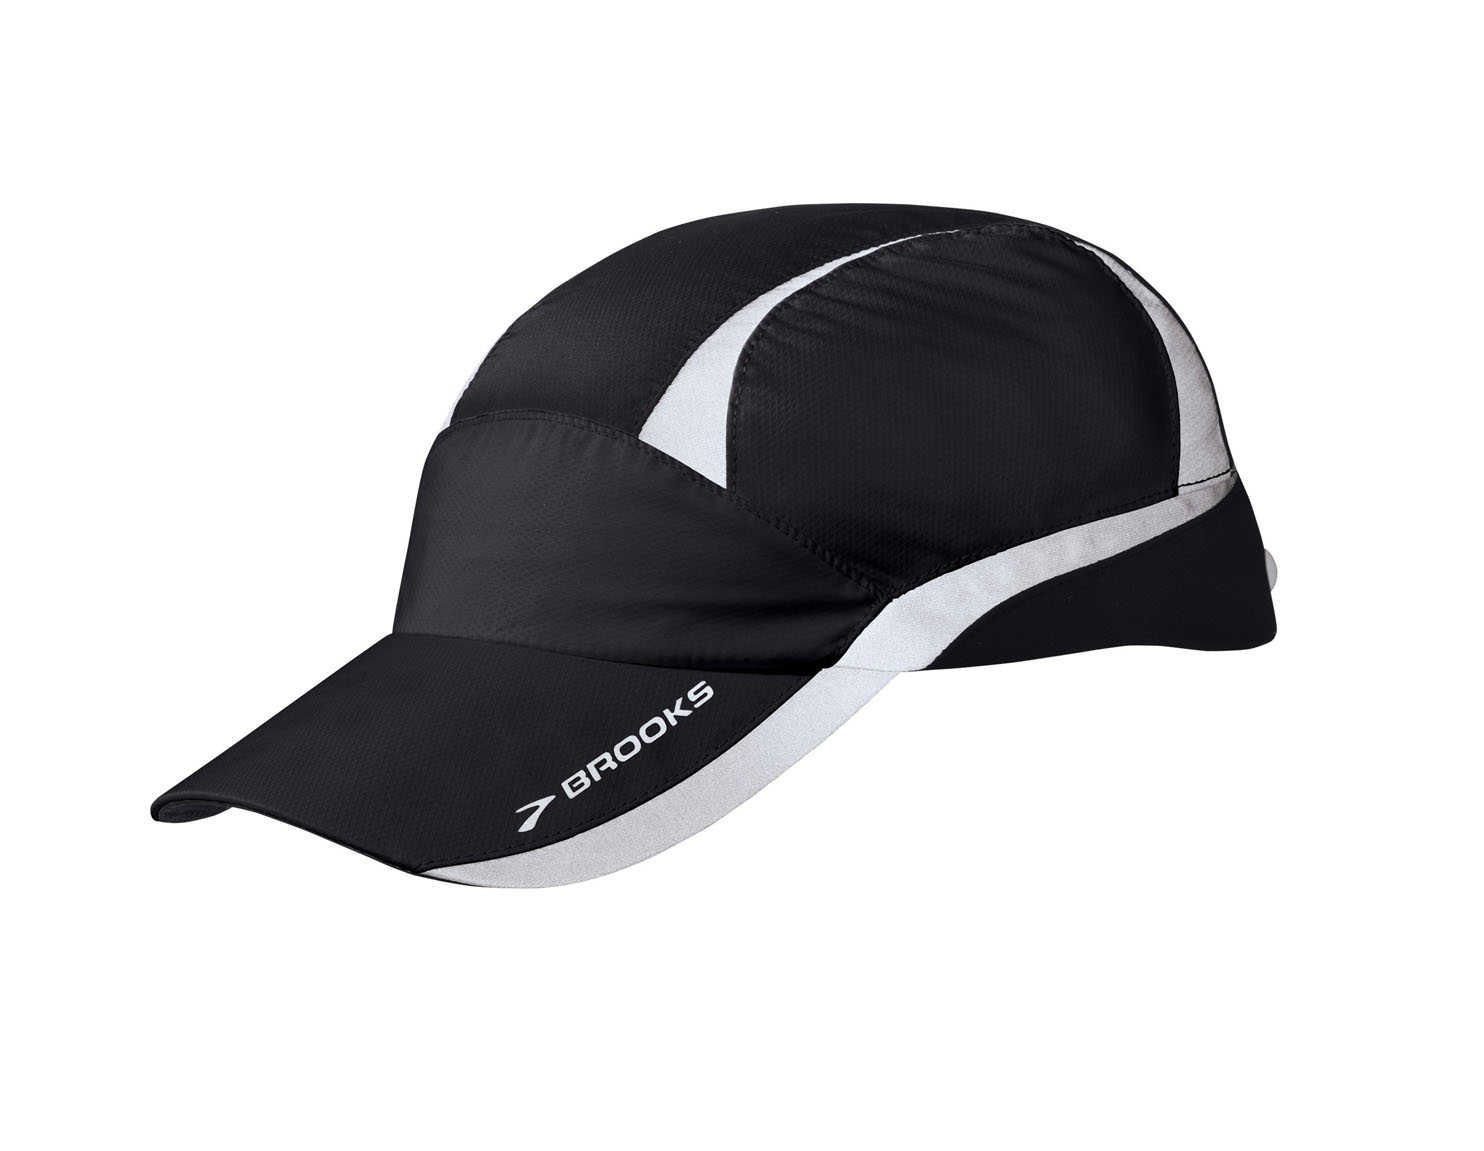 Nighlife Hat Nighttime Running Hat With Led Light Running Hats Brooks Running Hats